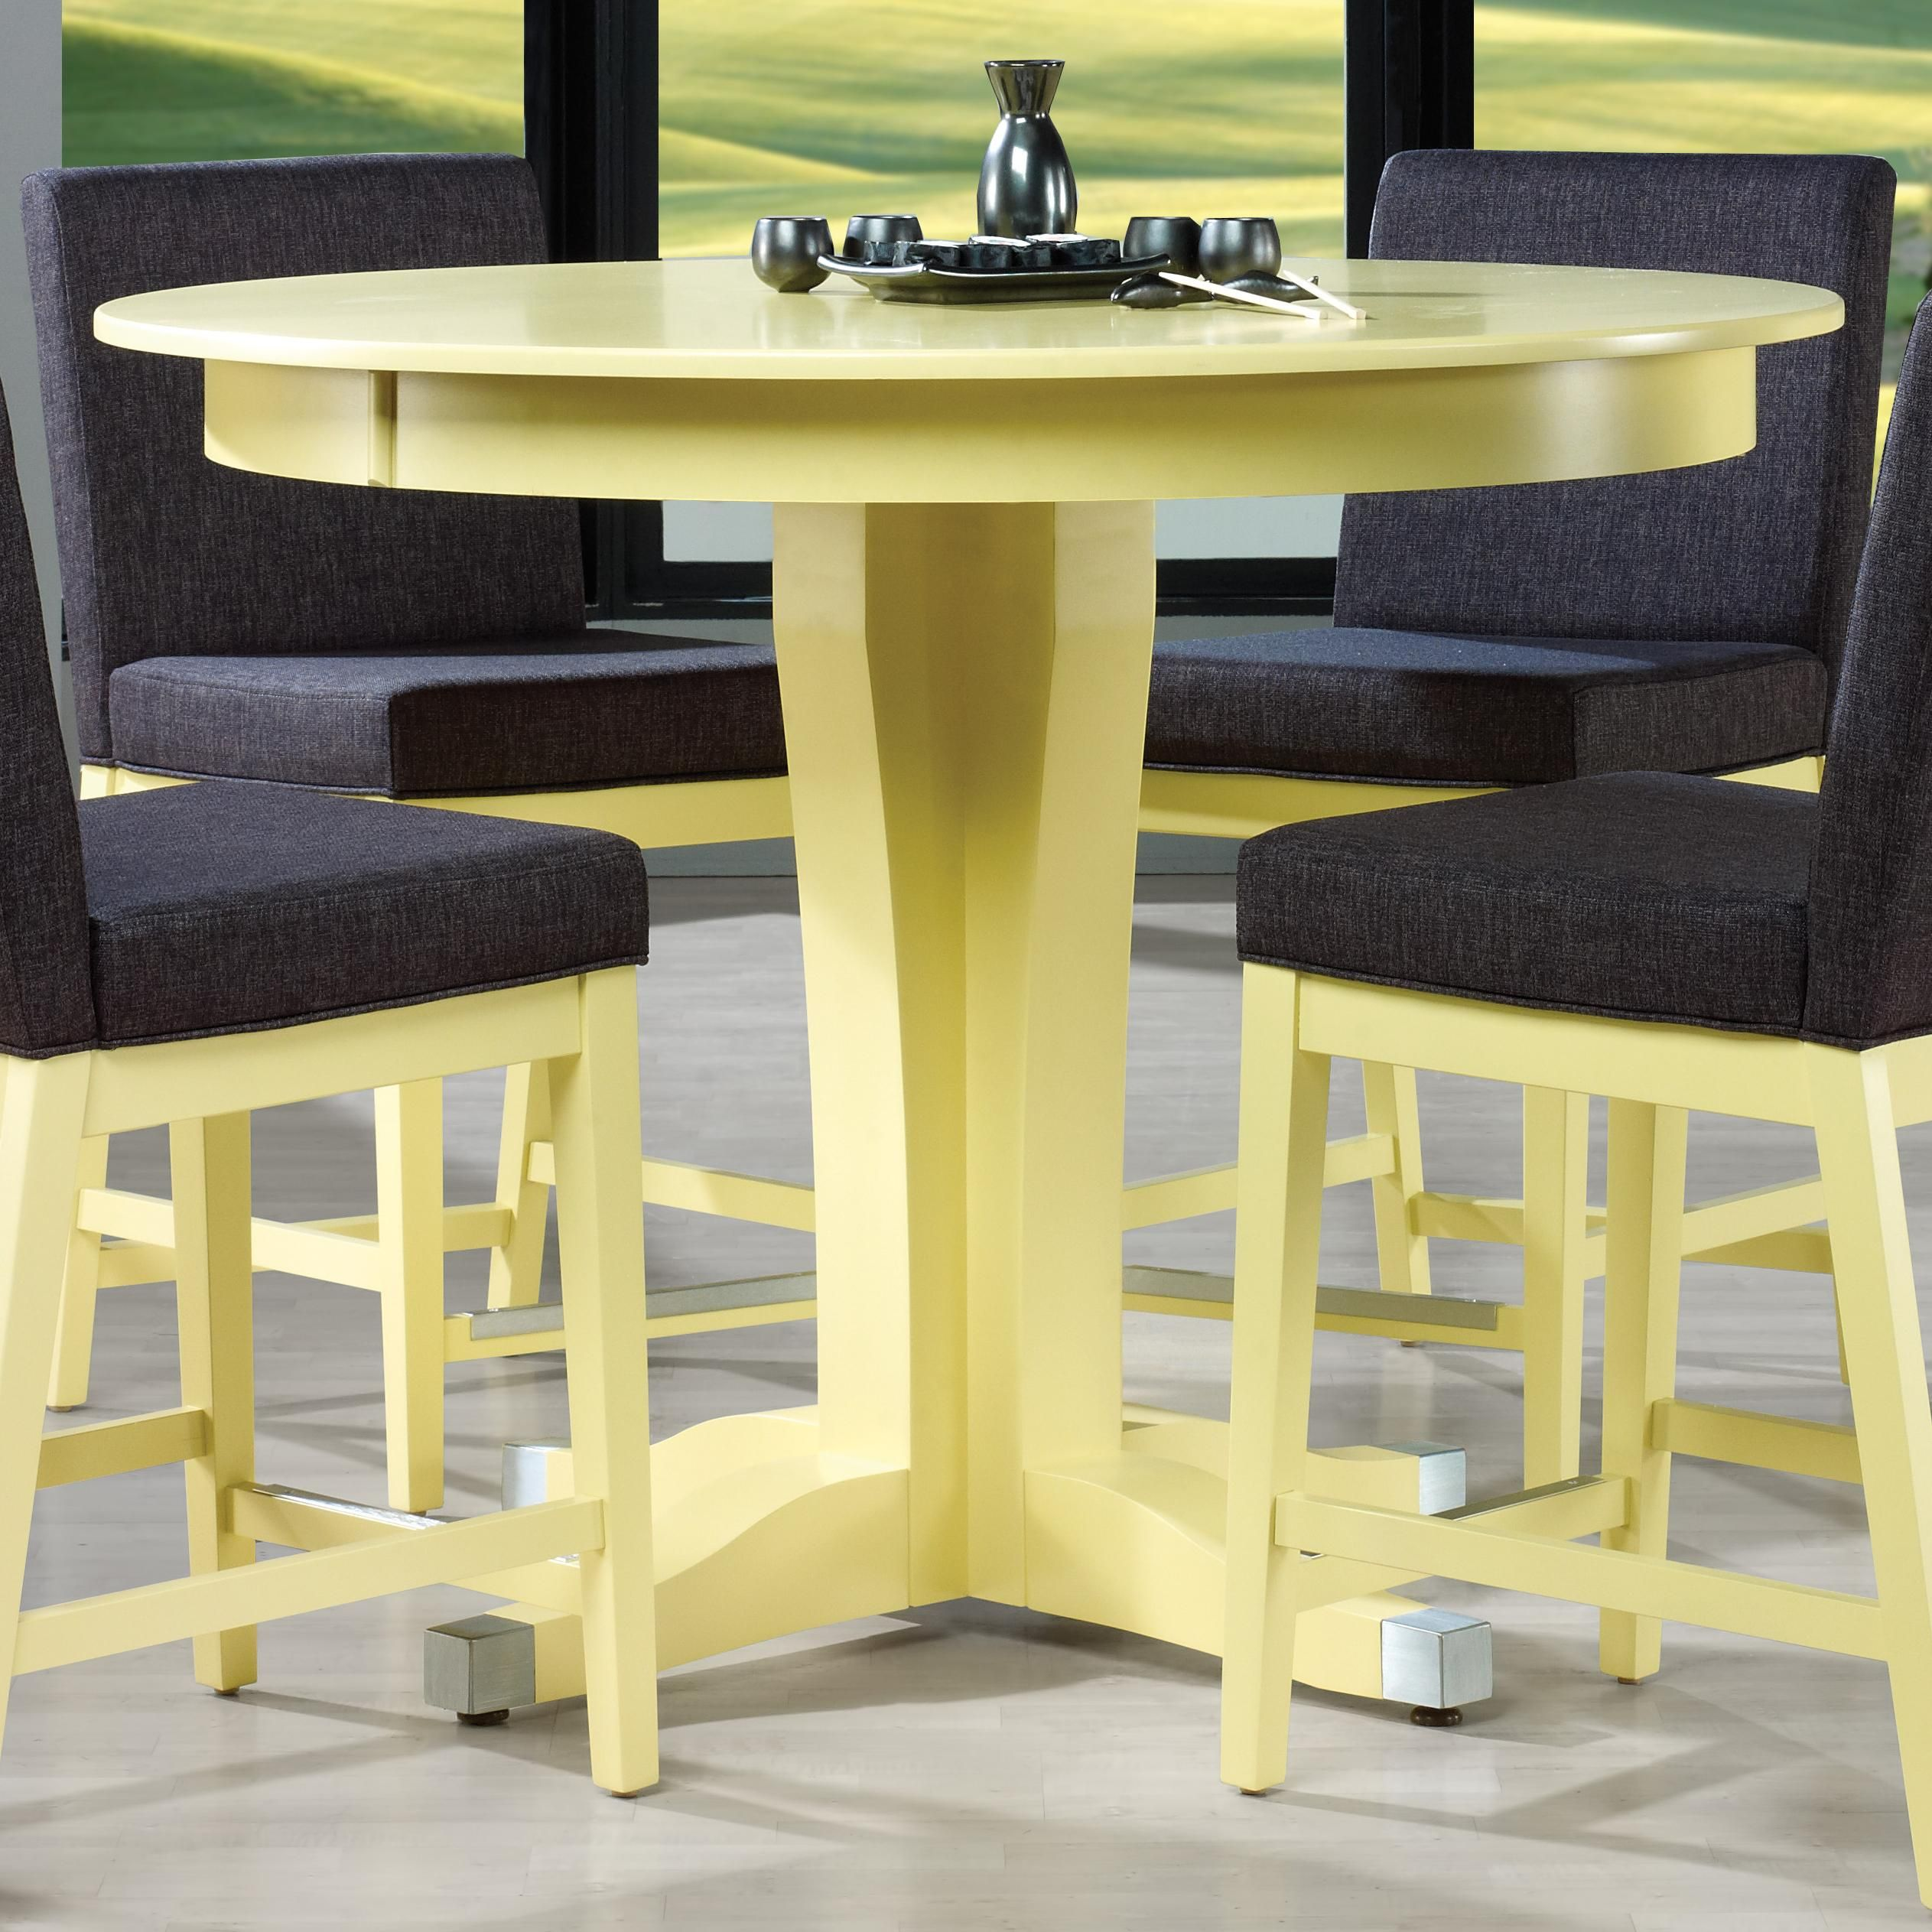 Patio Furniture Repair St Paul Mn: High Dining Customizable Round Counter